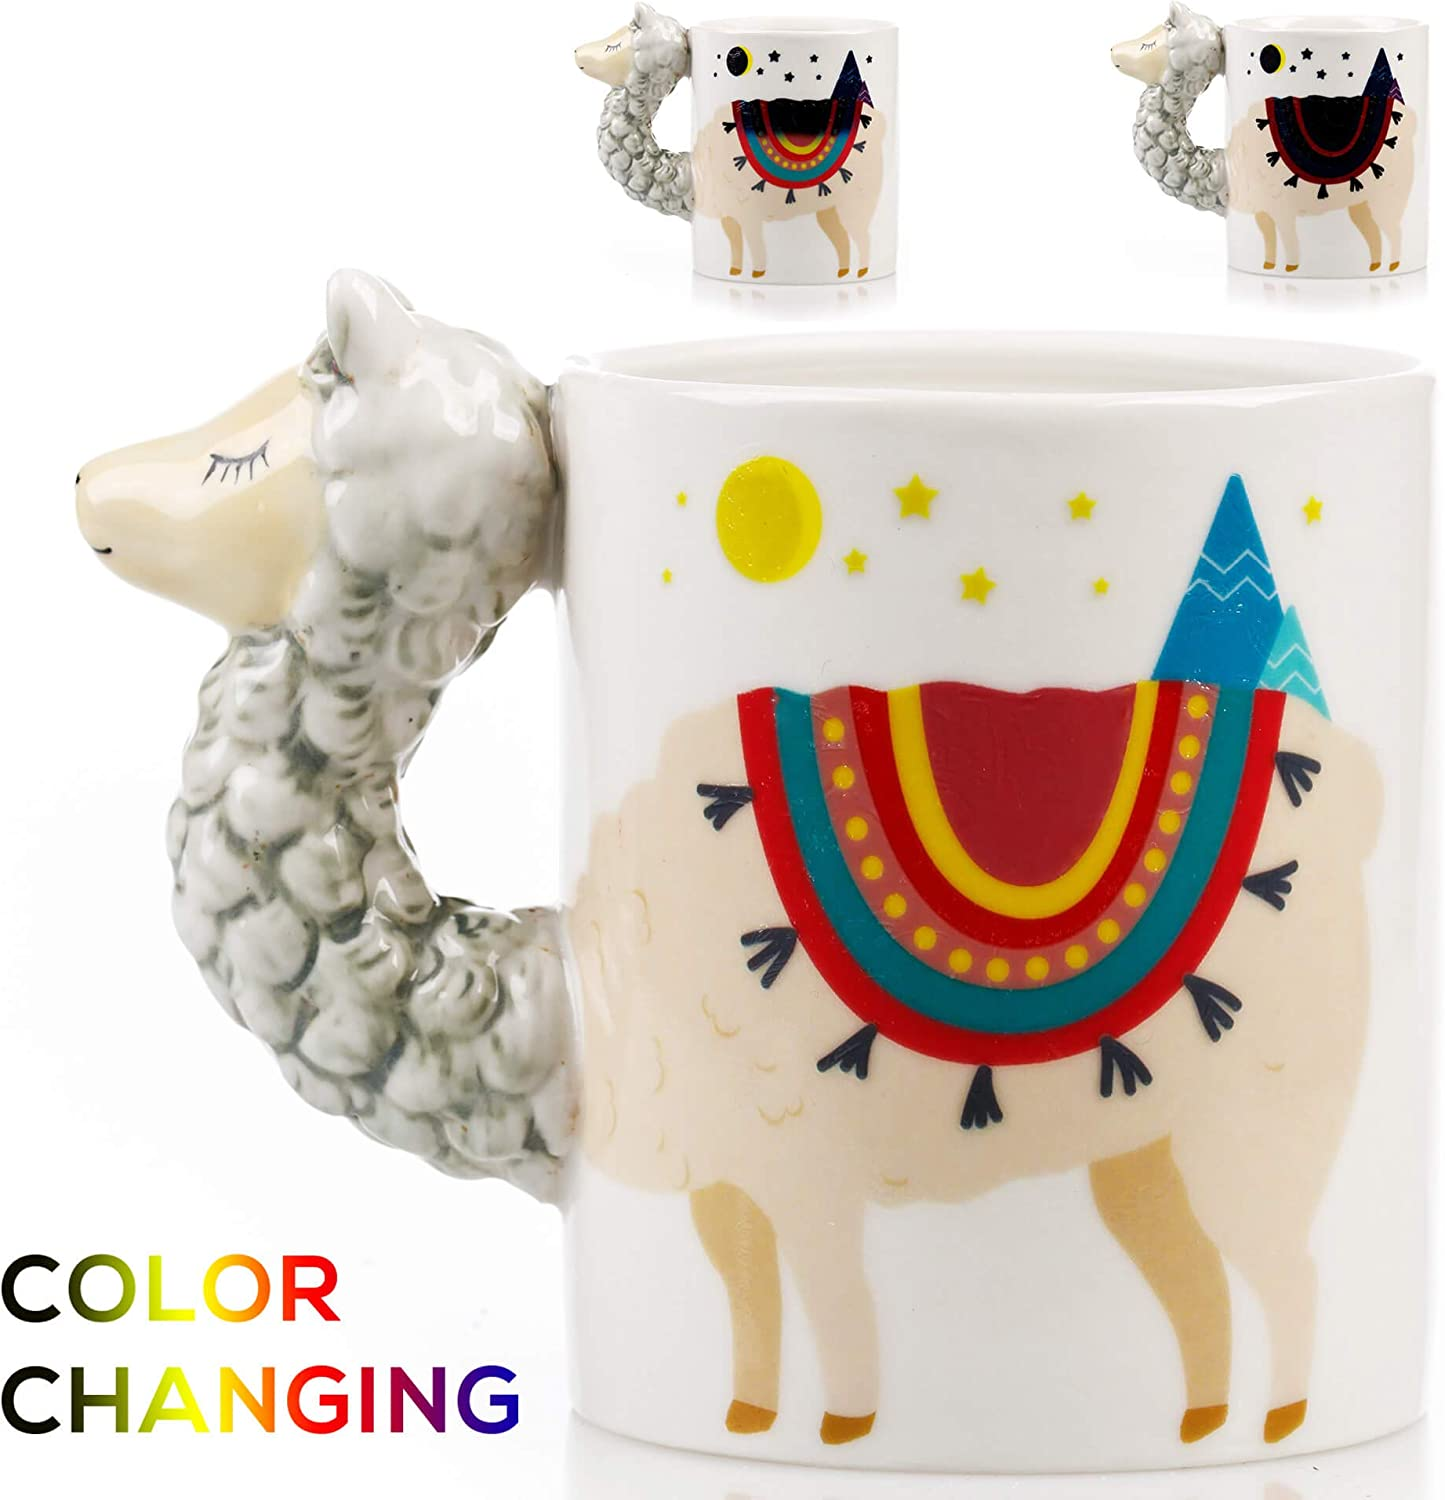 Color Changing Llama Mug - 3D Ceramic Lama Coffee Mugs. Novelty Alpaca llama gifts. Perfect Holiday or Birthday Gift for Llama lovers. Great Kitchen, Office or Bedroom Decor. Makes A Great Cup of Tea